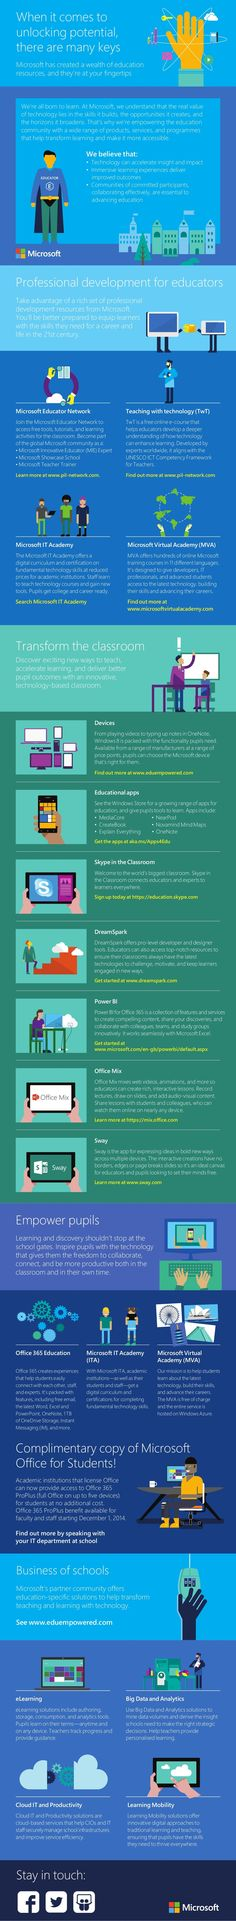 [Infographic] Microsoft in Education: Adding Value to Experiences both Inside and Outside of the Classroom - EdTechReview™ (ETR)